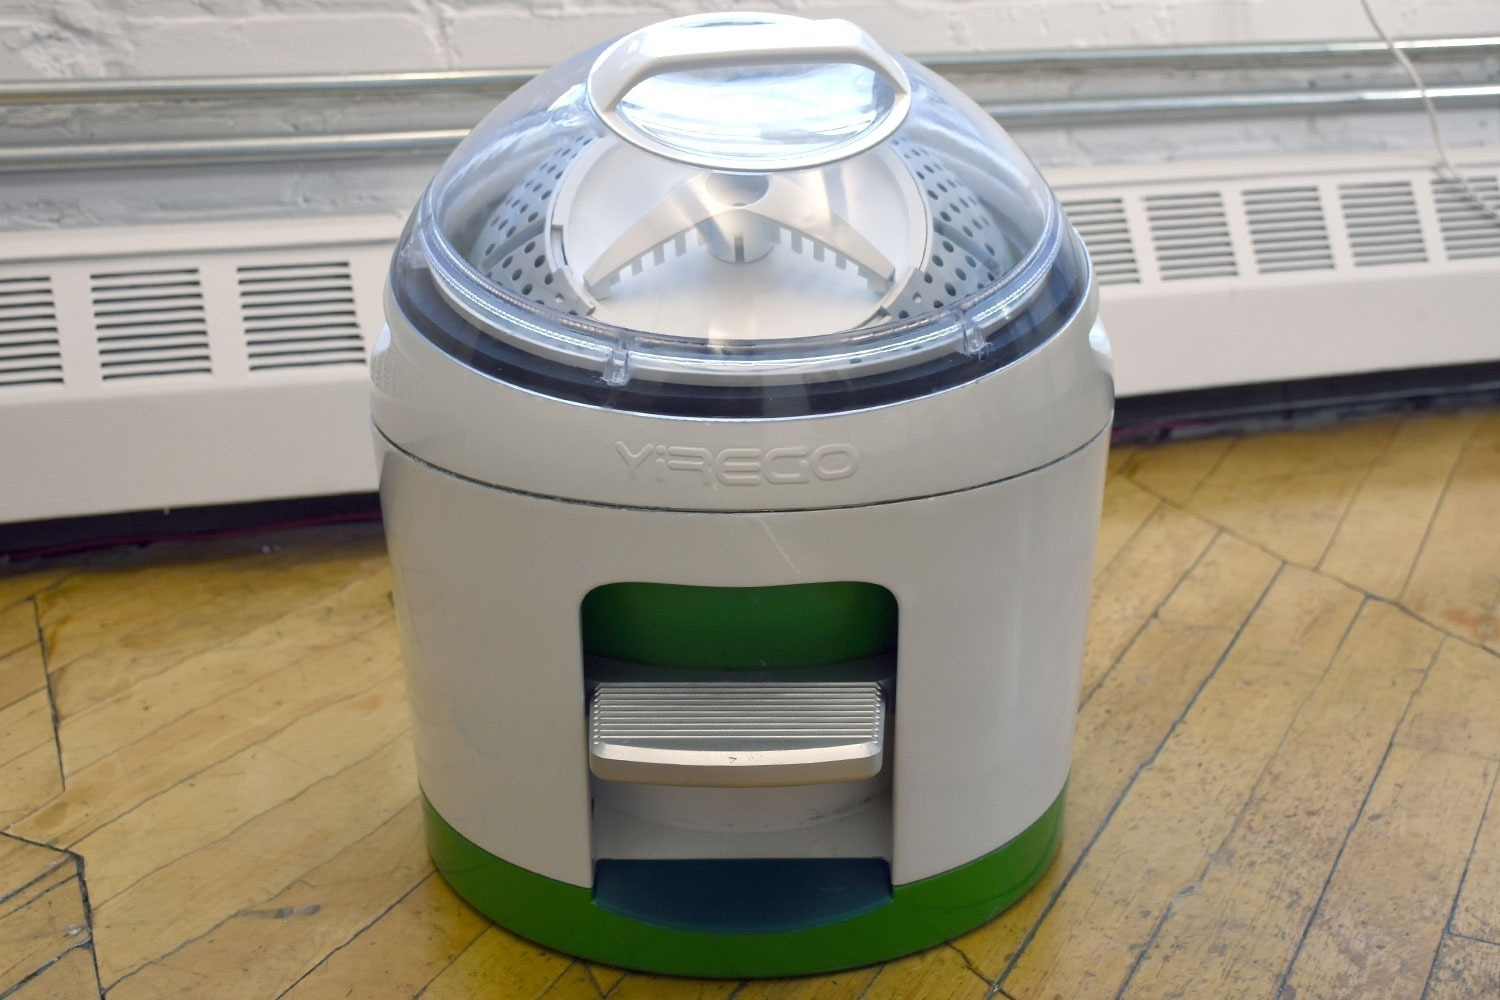 yrigo-drumi-foot-powered-washing-machine-05